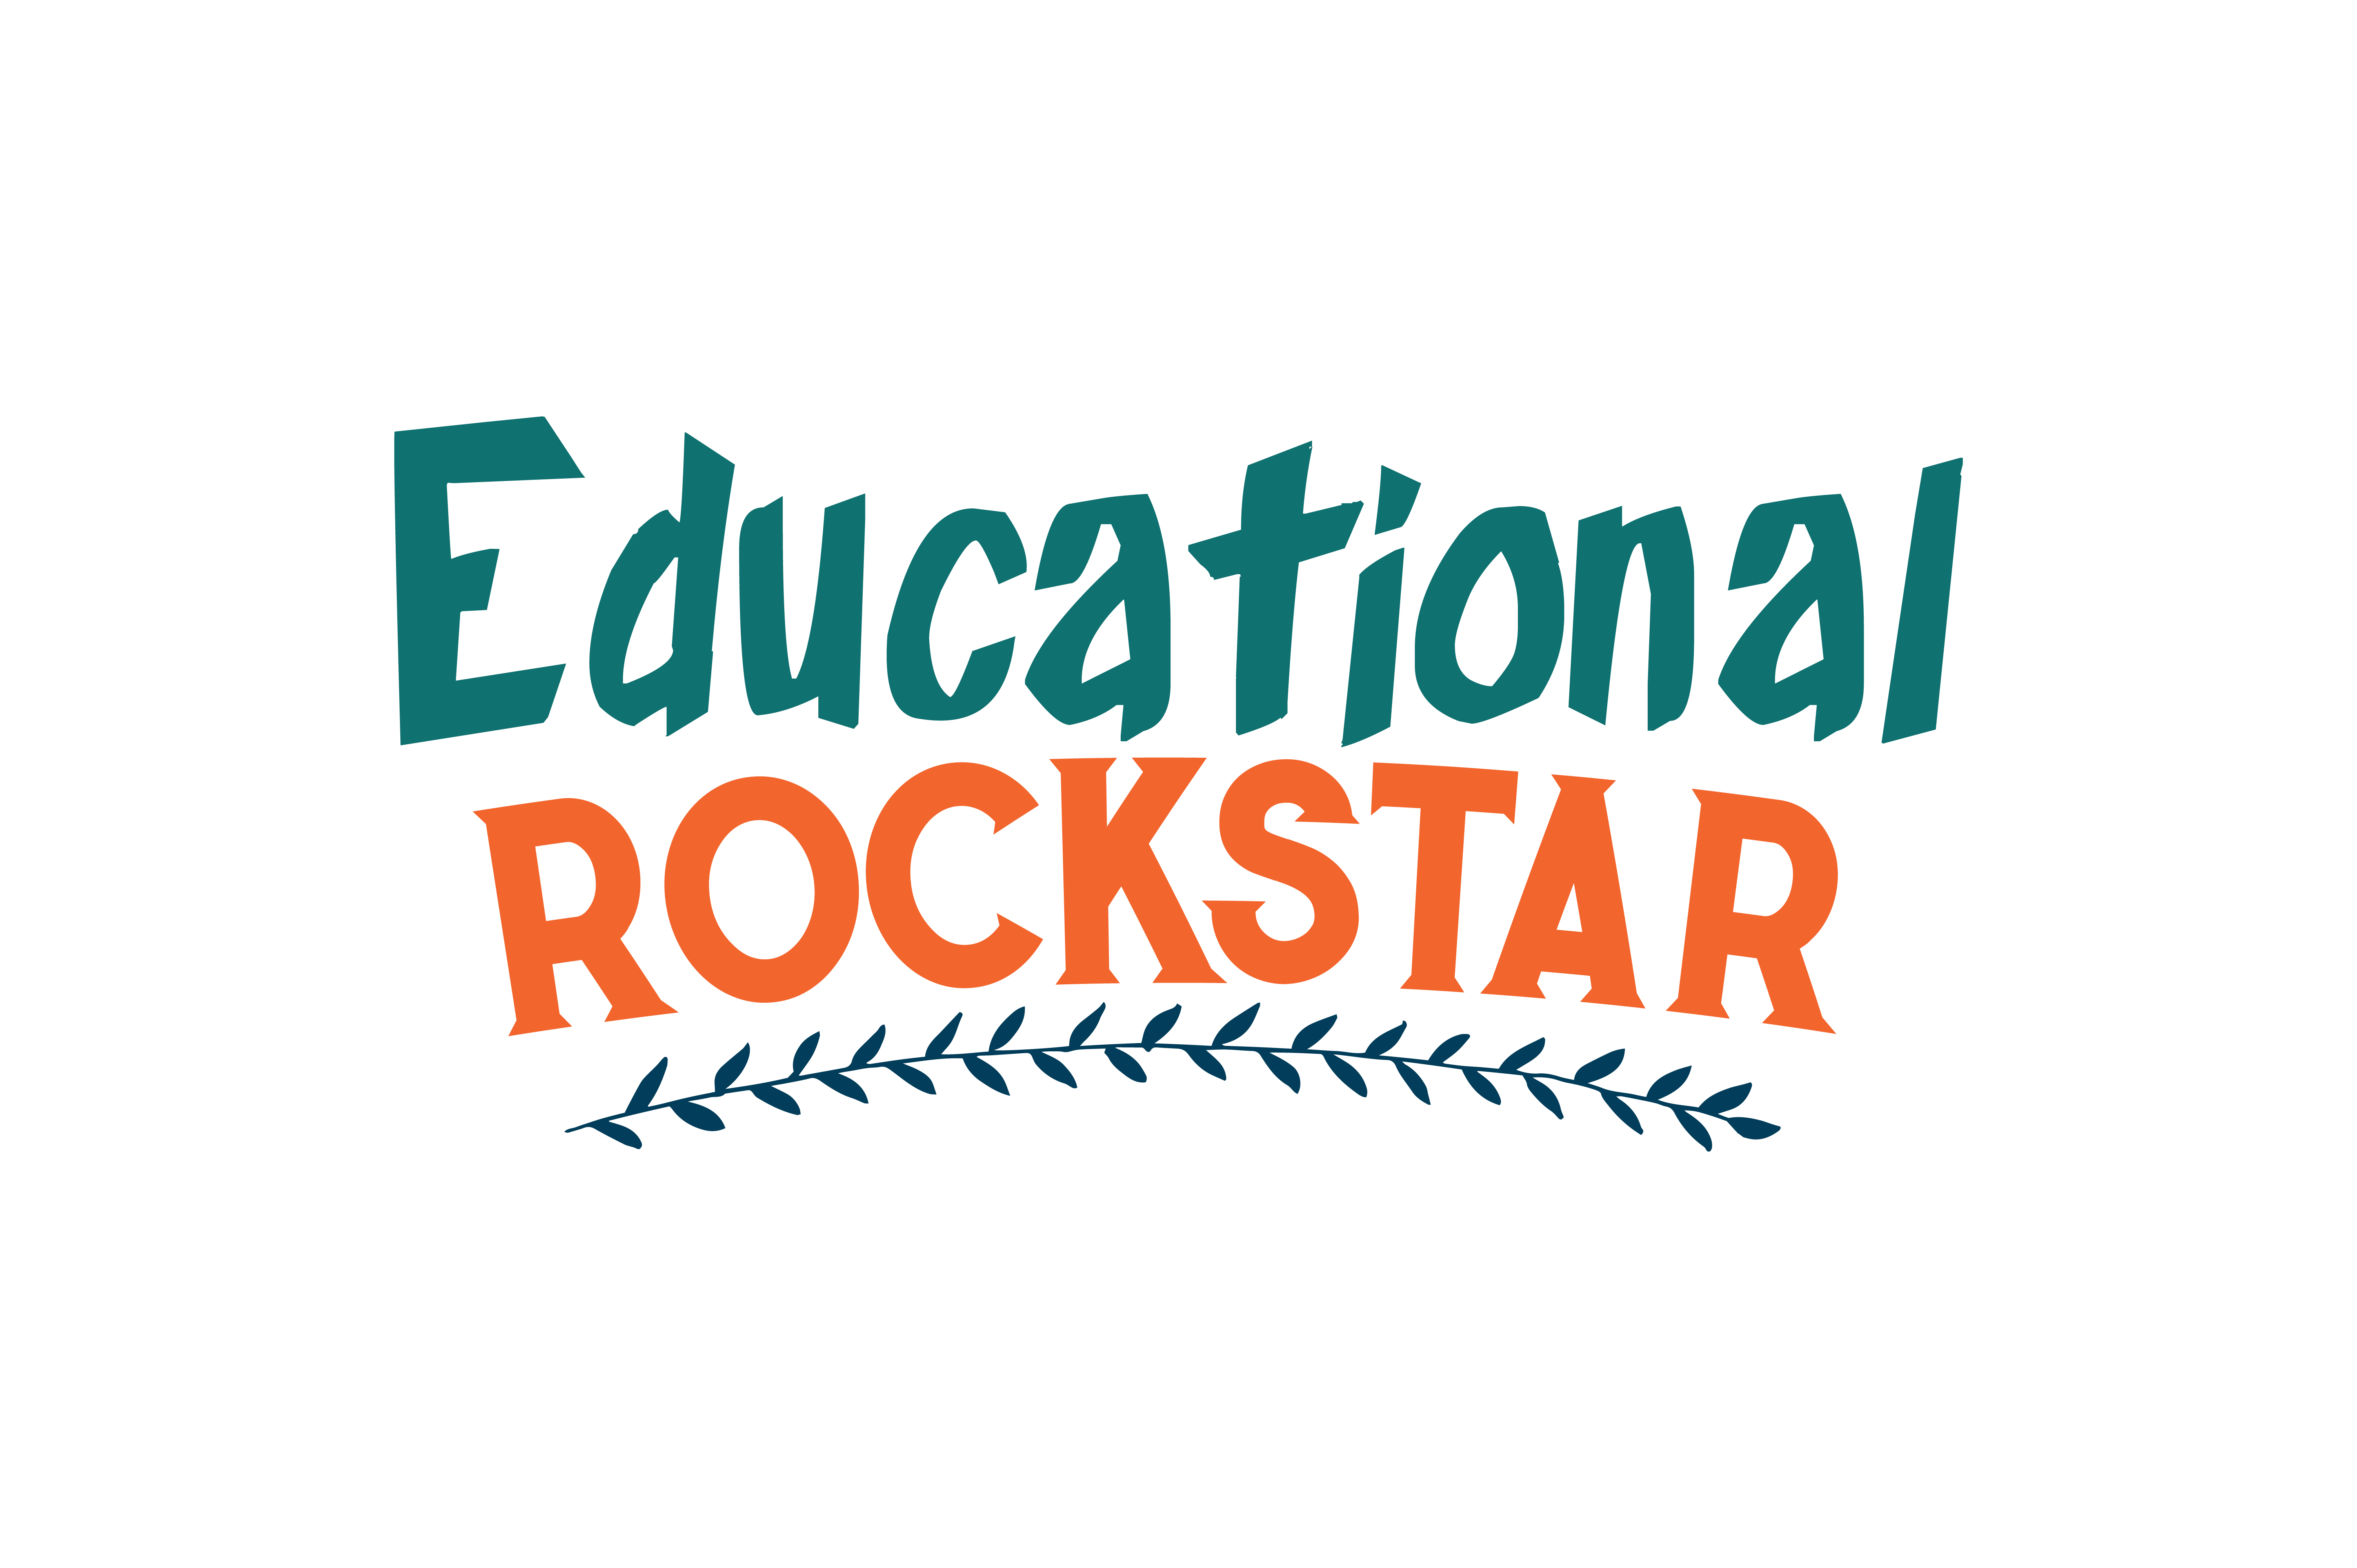 Download Free Educational Rockstar Quote Svg Cut Graphic By Thelucky for Cricut Explore, Silhouette and other cutting machines.